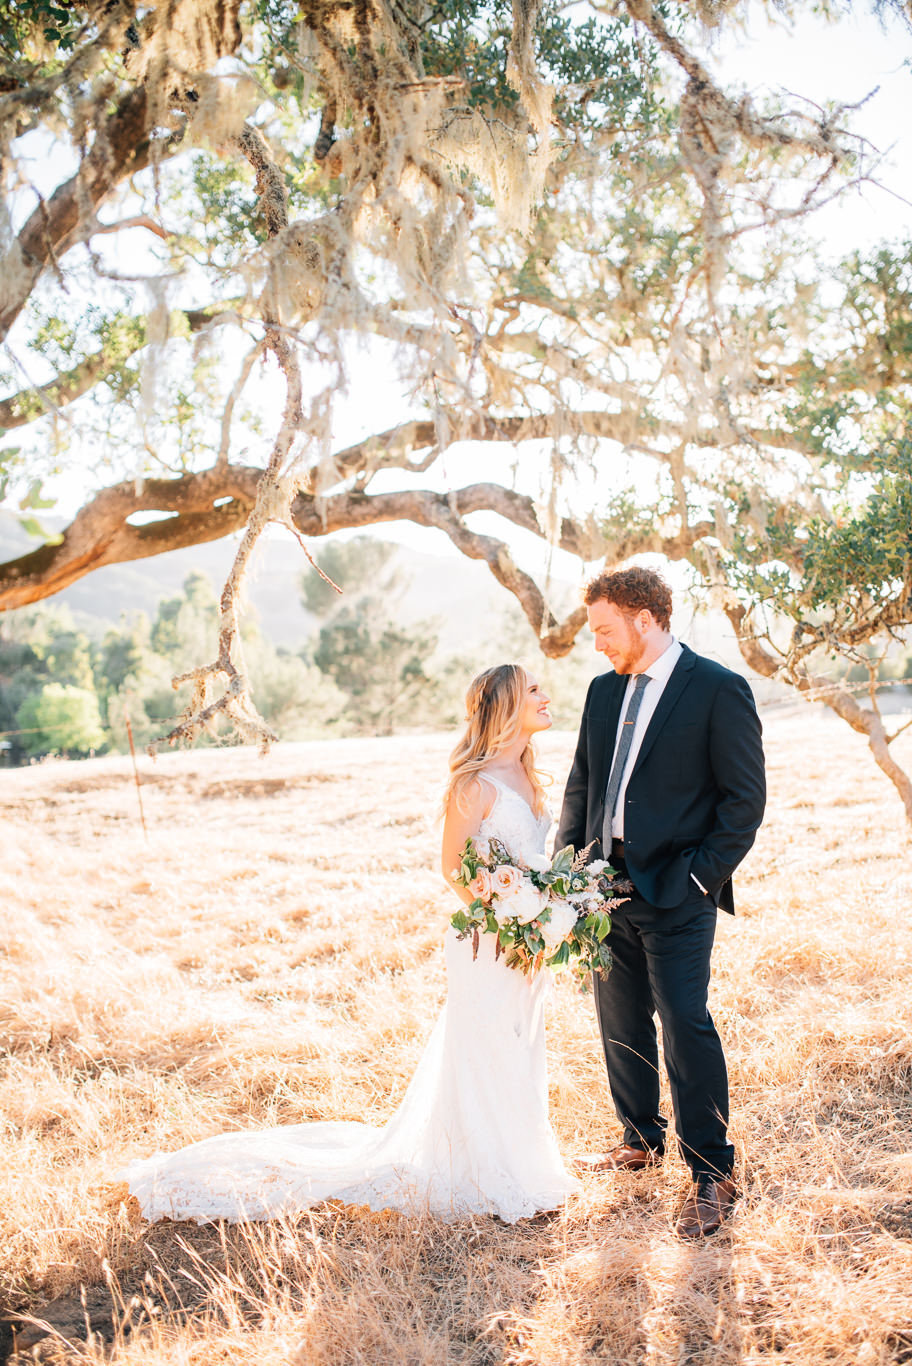 San Luis Obispo wedding photo by Amber McGaughey034